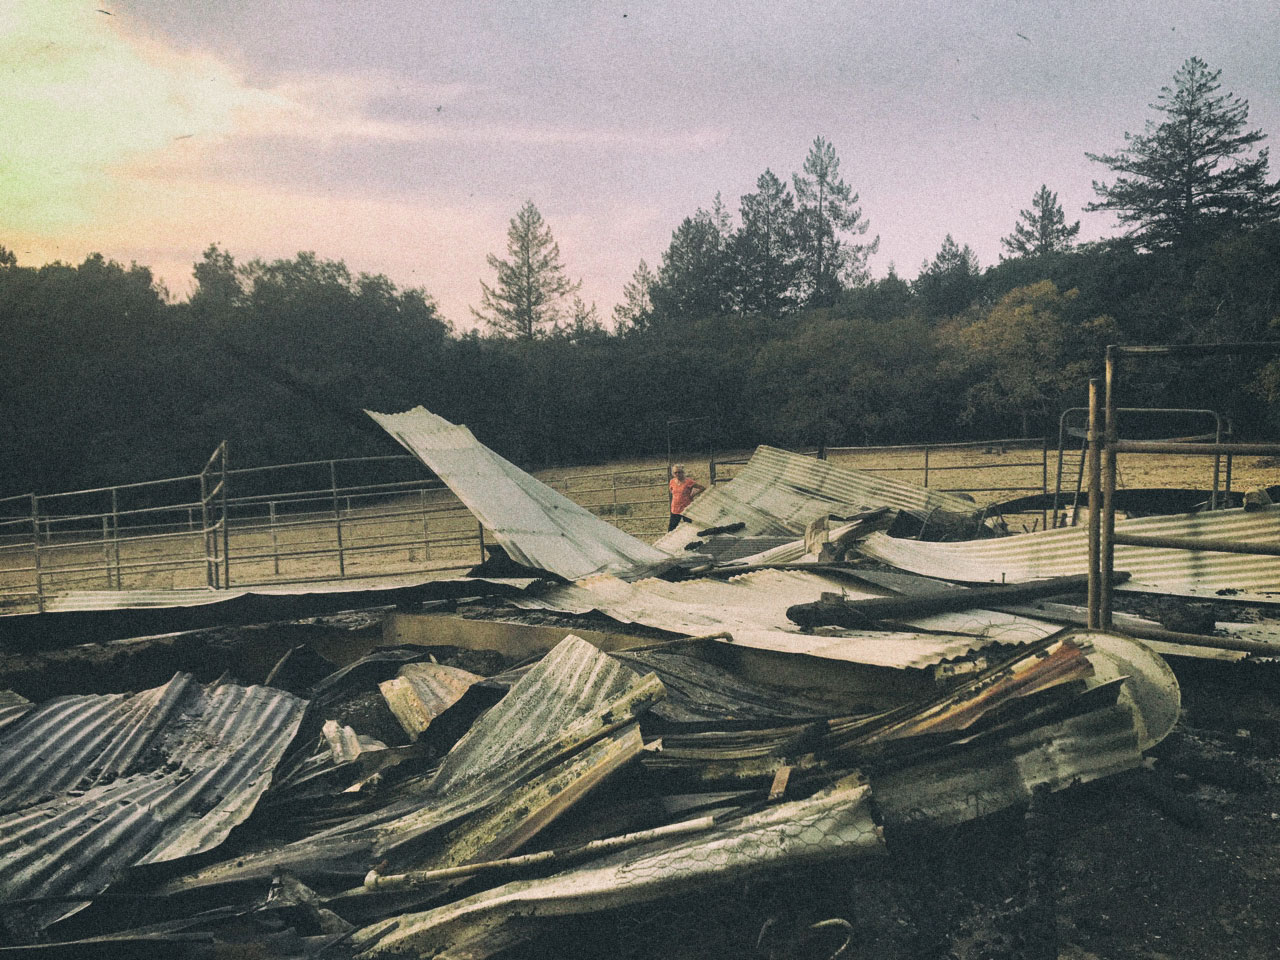 Claudette and what remains of her stables.